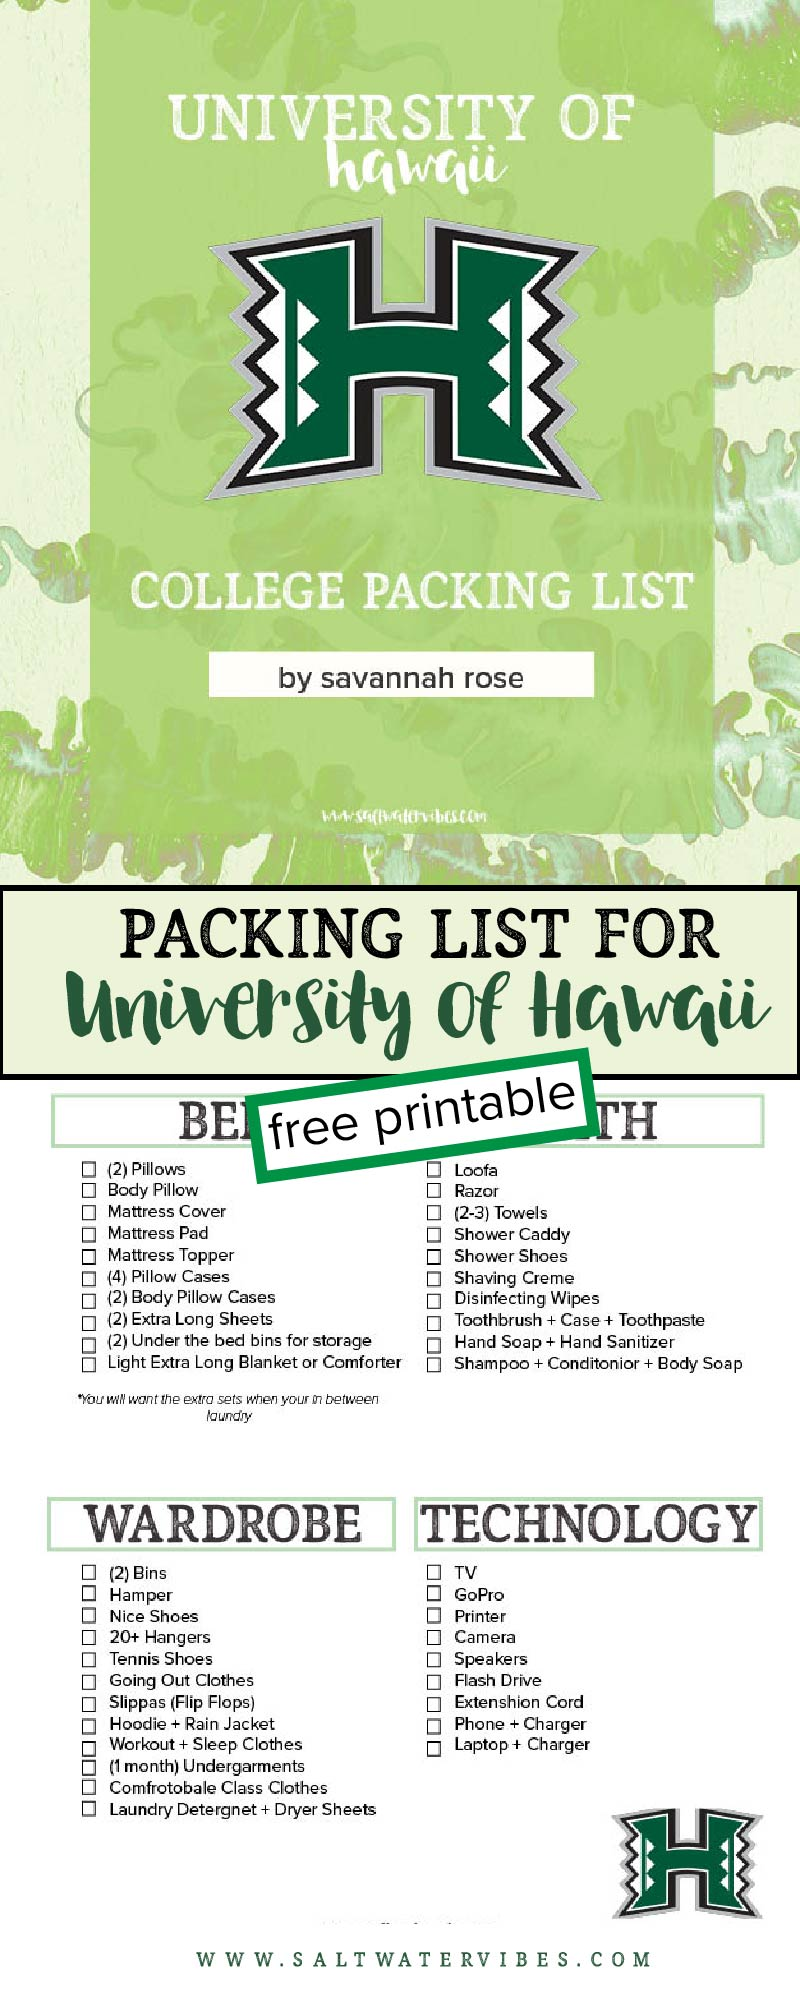 Everything You Need to Know About University of Hawaii at Manoa + Free Printable College Packing Checking List + SaltWaterVibes